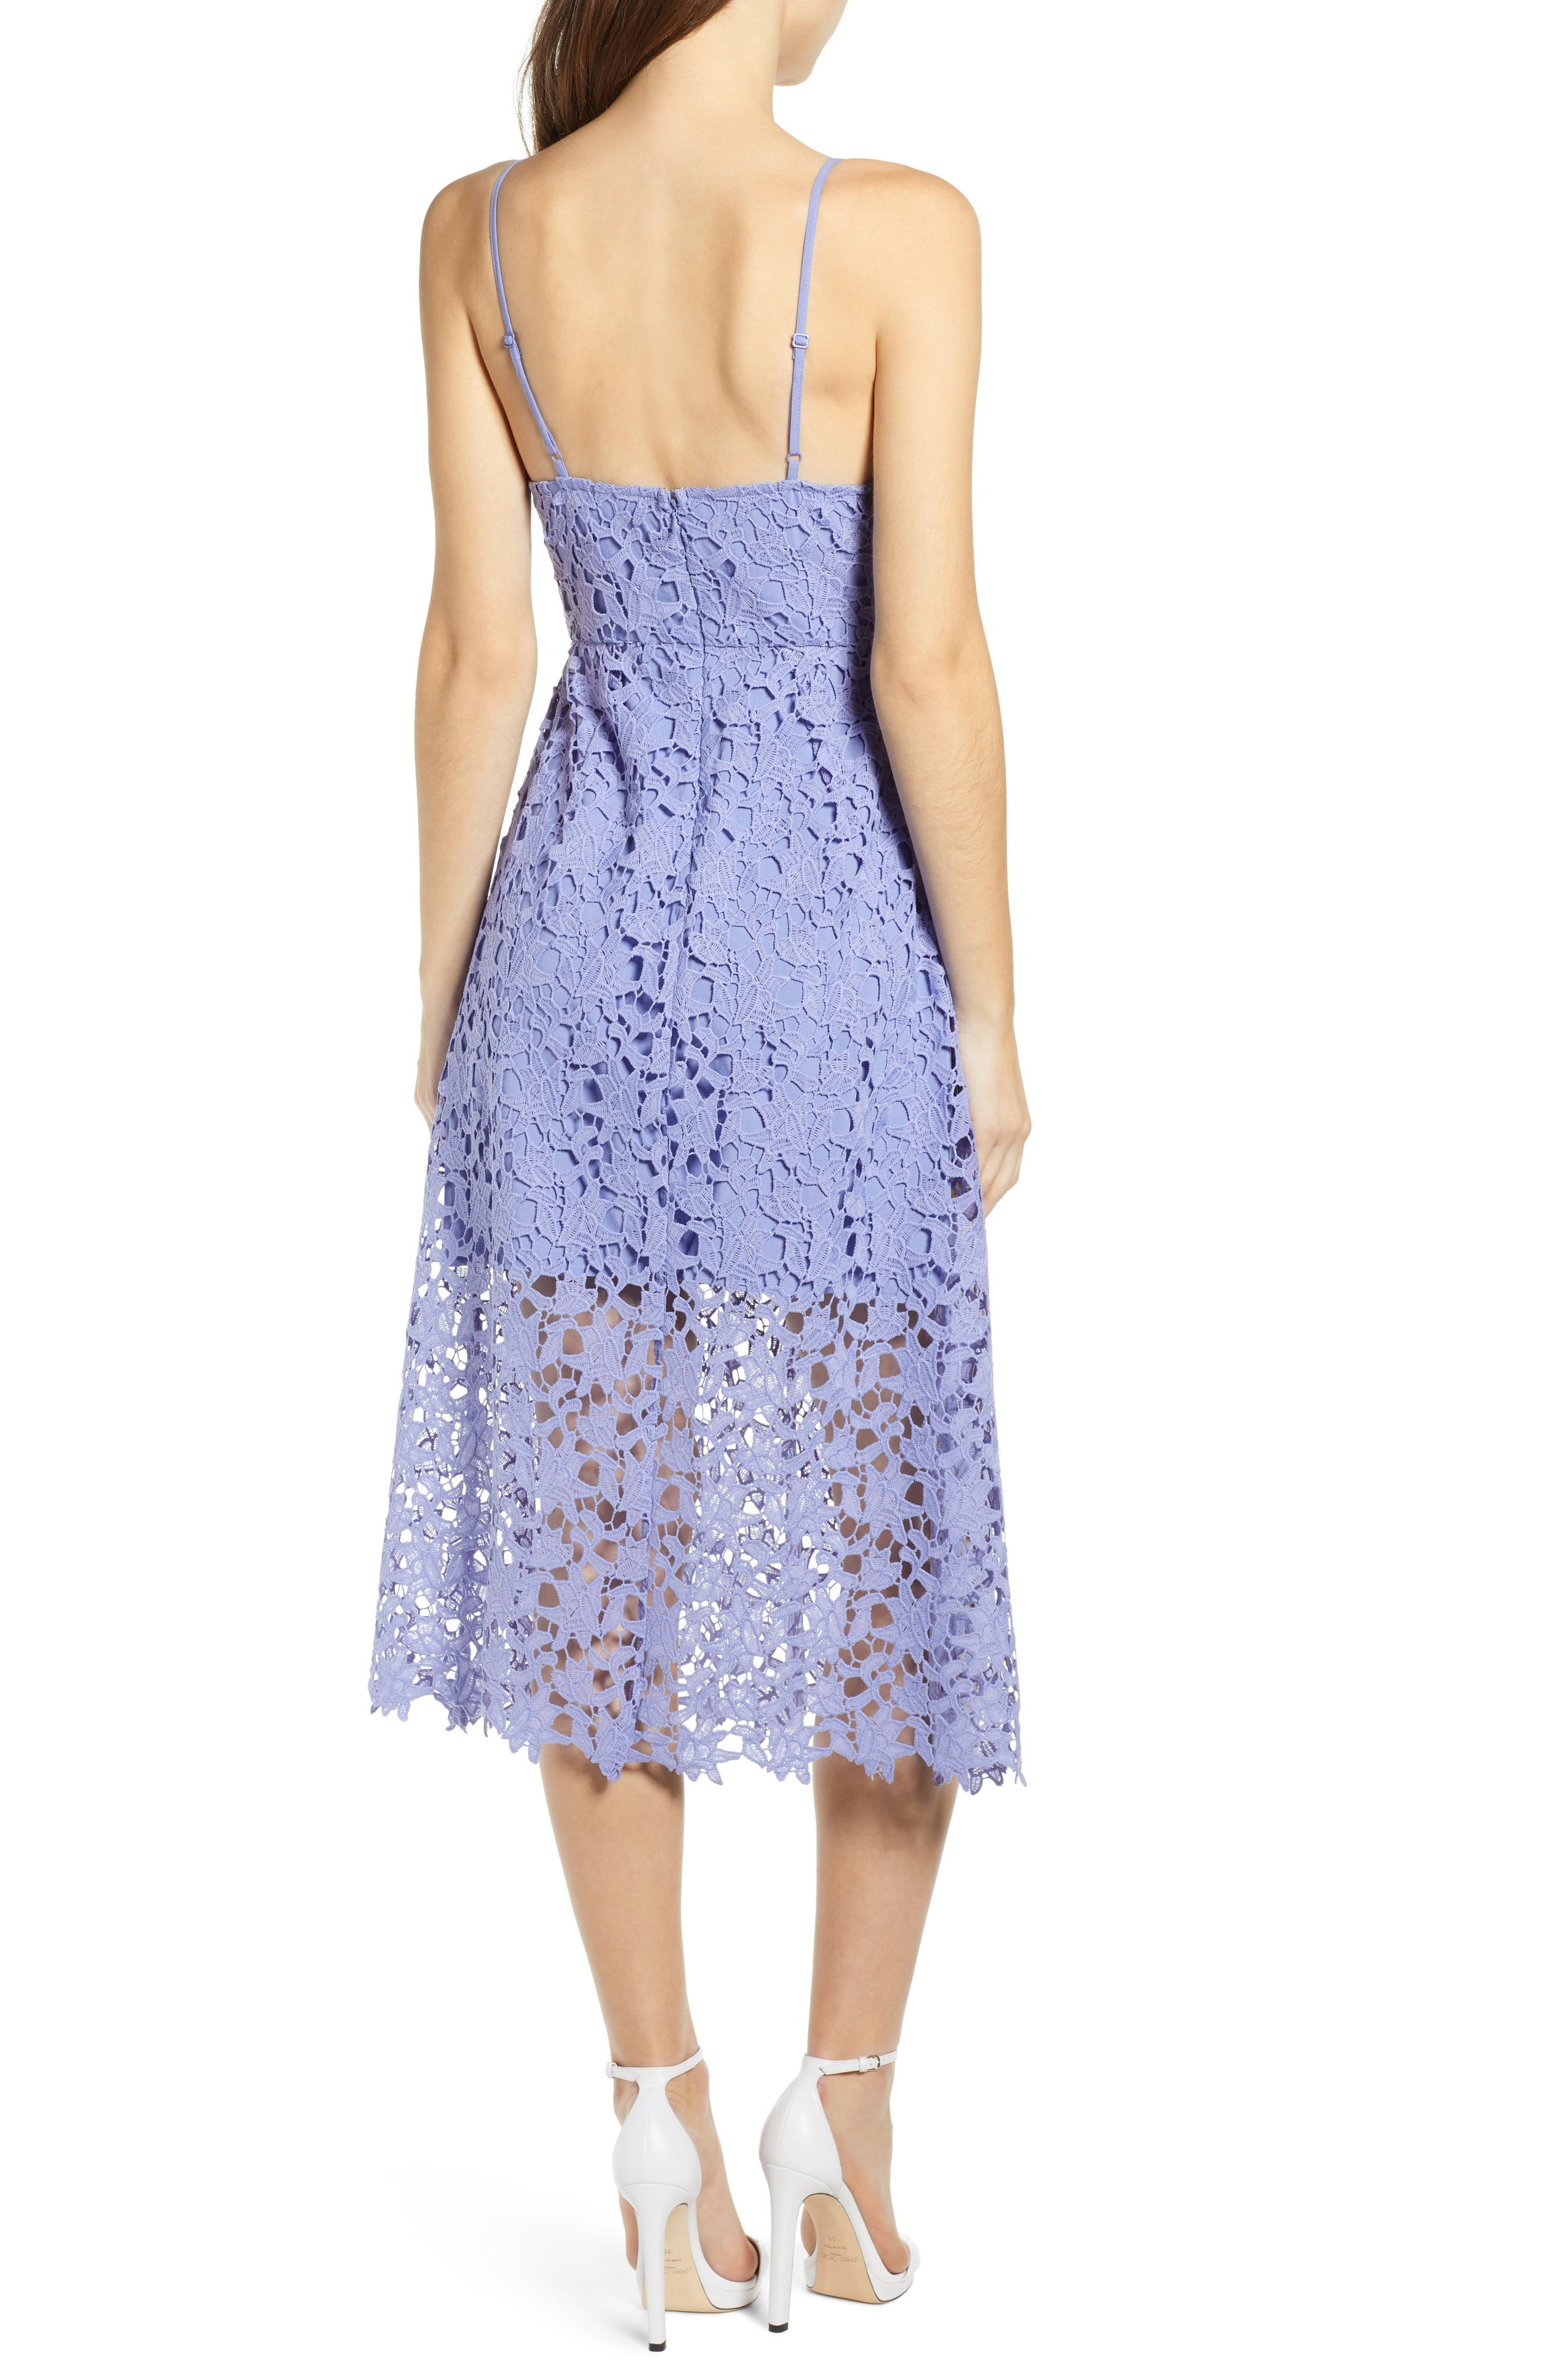 ASTR THE LABEL, Lace Midi Dress, Alternate thumbnail 2, color, LAVENDER